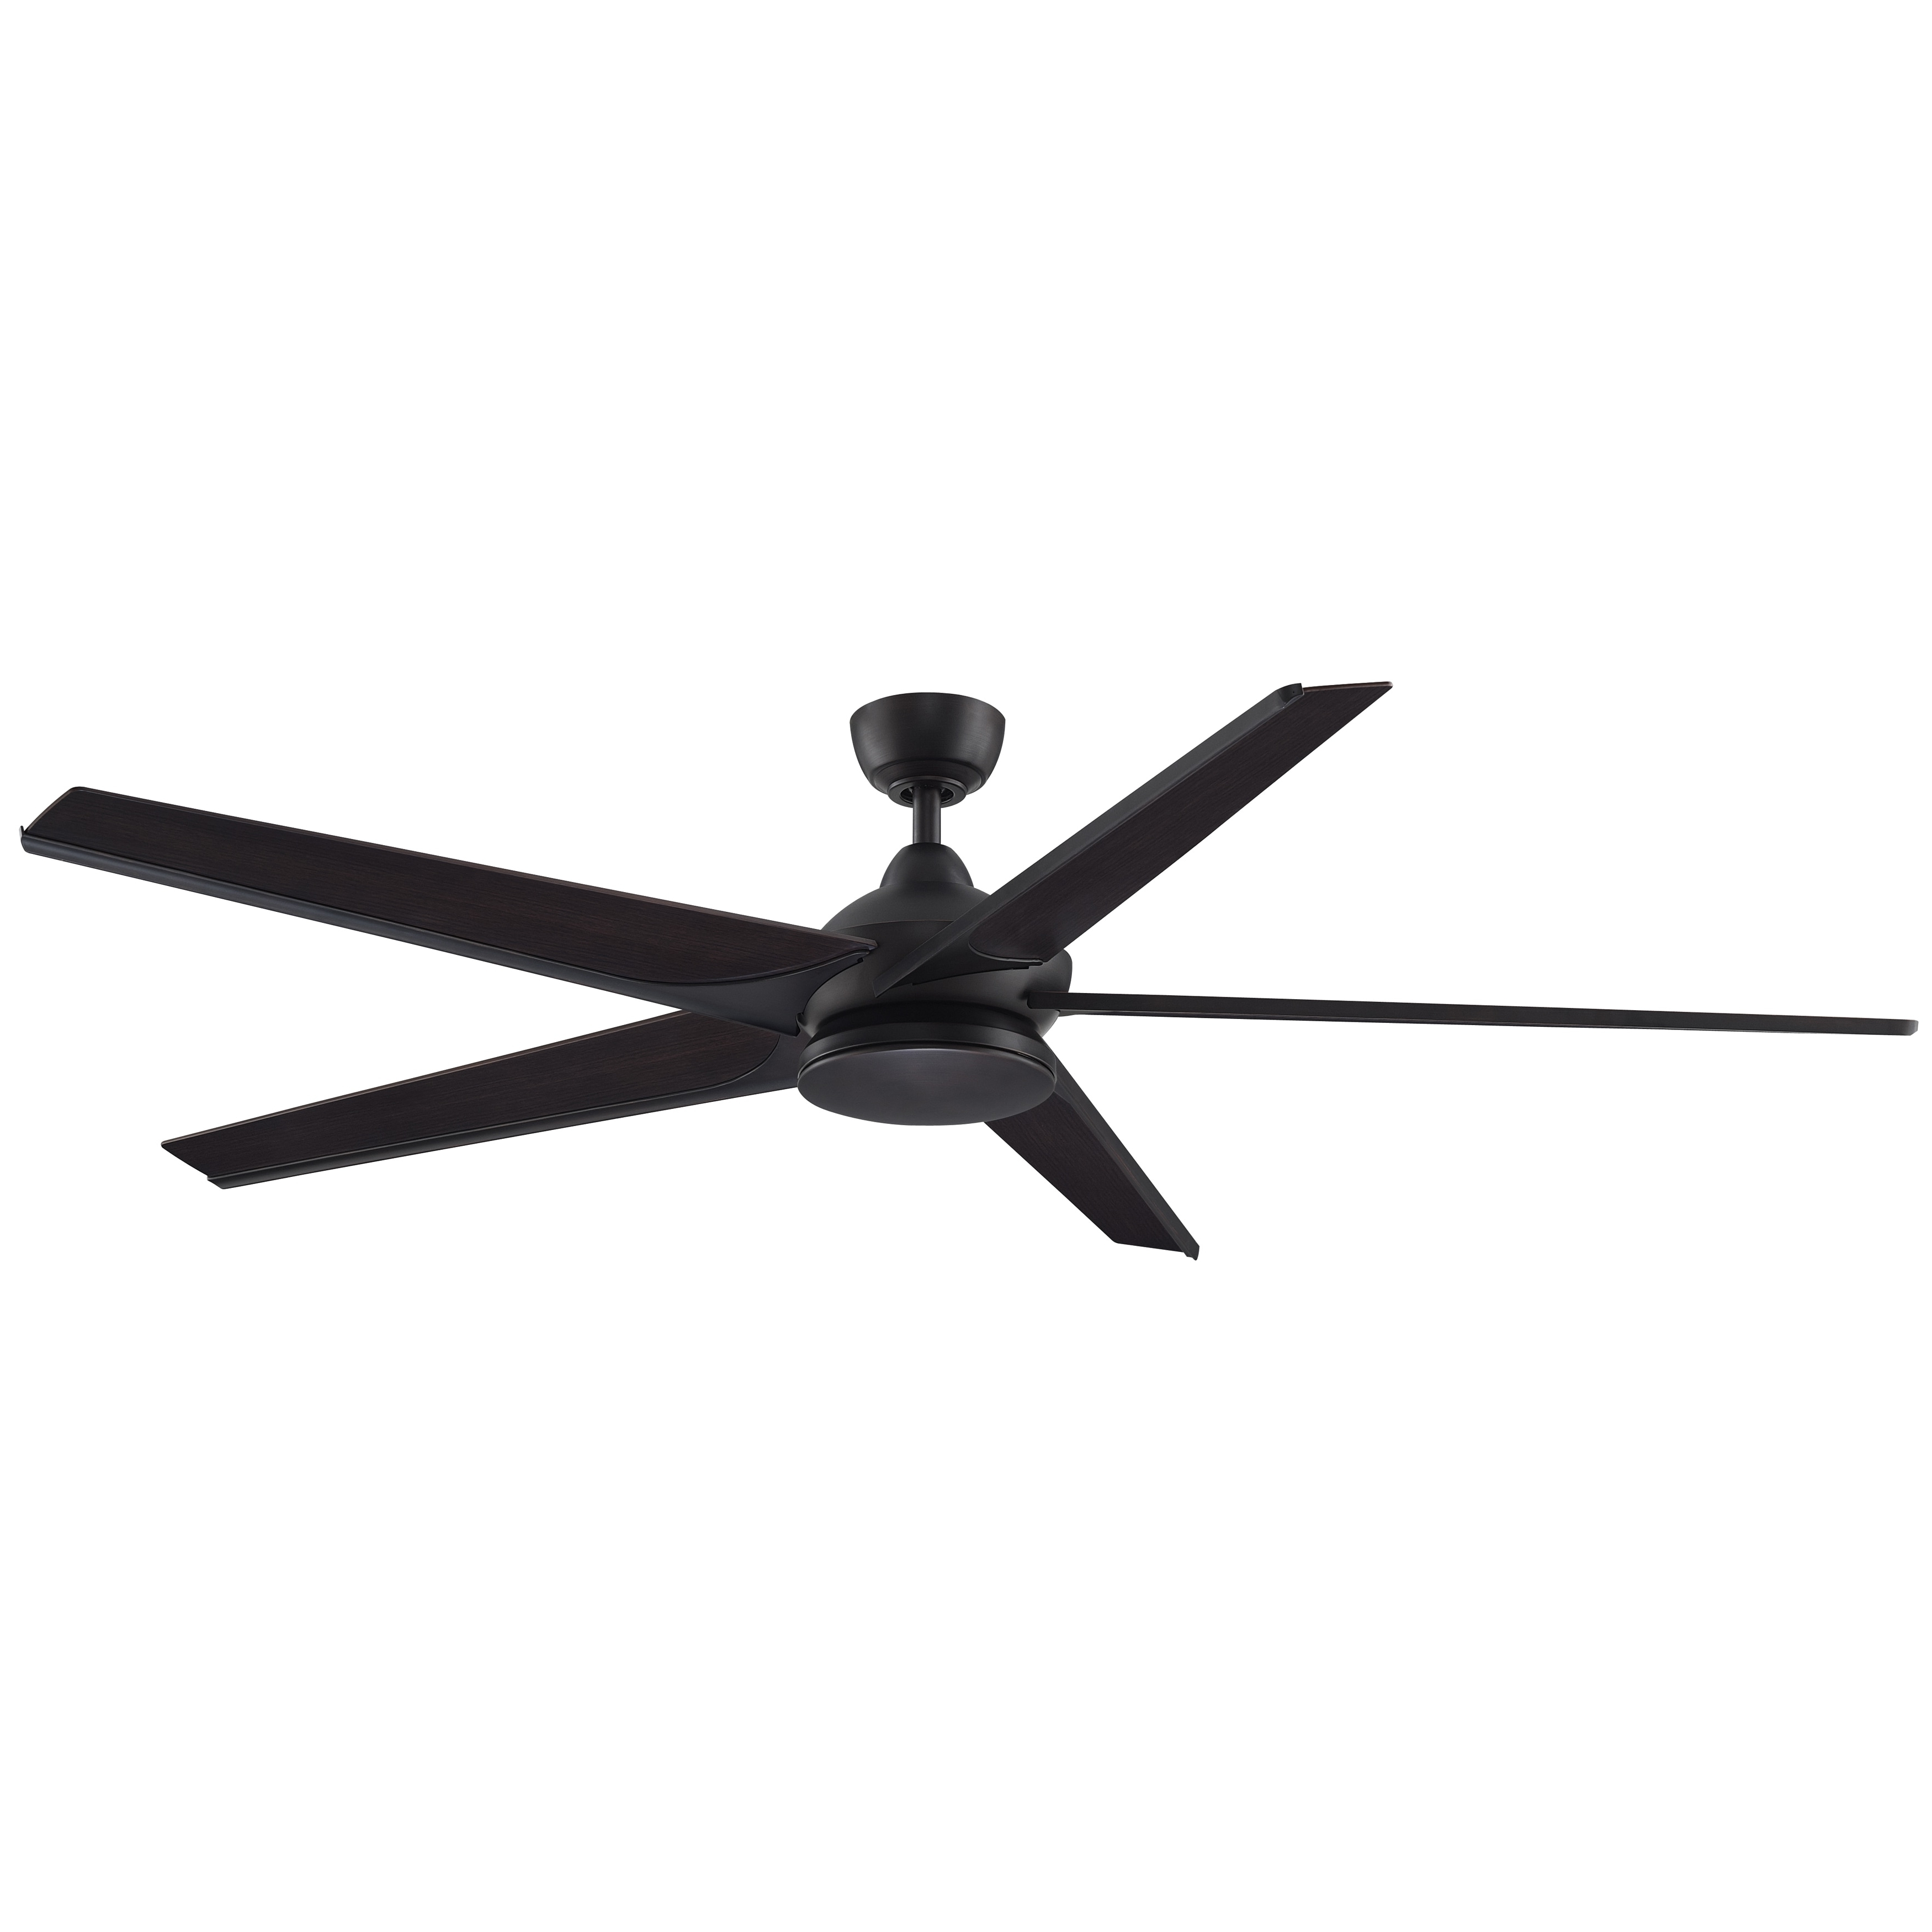 Shop Fanimation Subtle 72 Inch Ceiling Fan – Free Shipping Today In Best And Newest 72 Inch Outdoor Ceiling Fans (View 17 of 20)